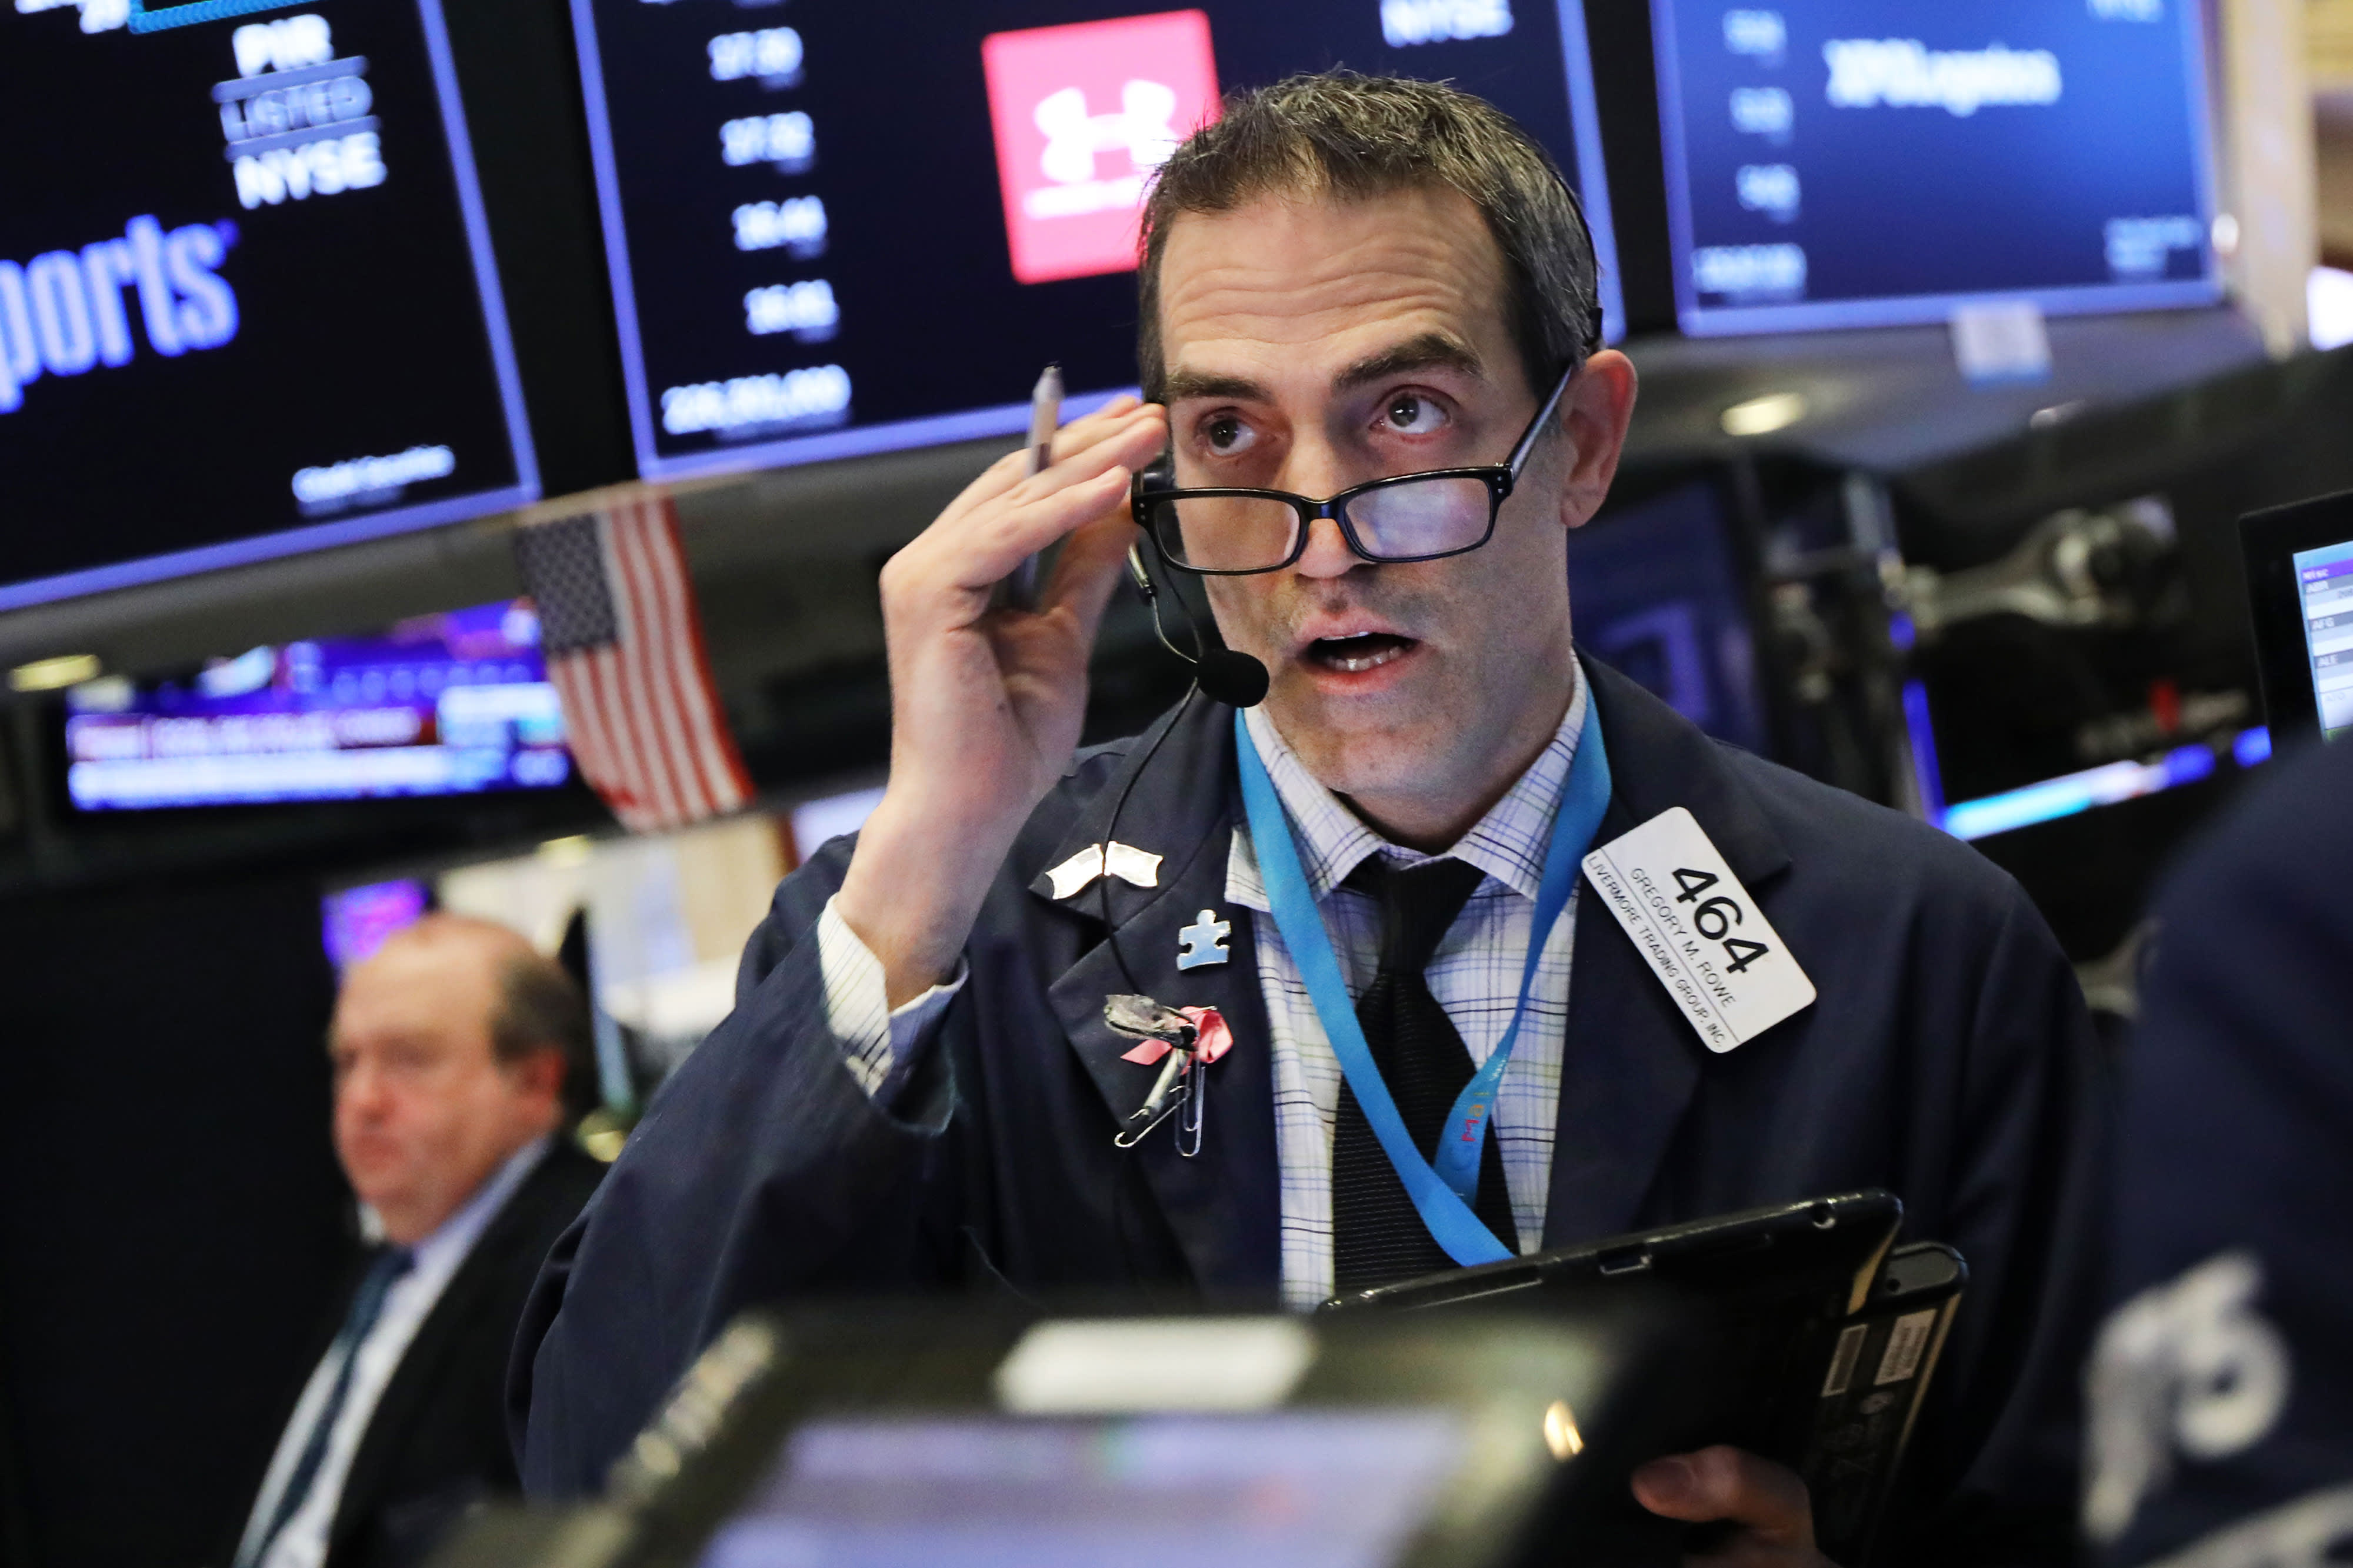 Dow rallies more than 200 points as Wall Street continues rebound from August sell-off